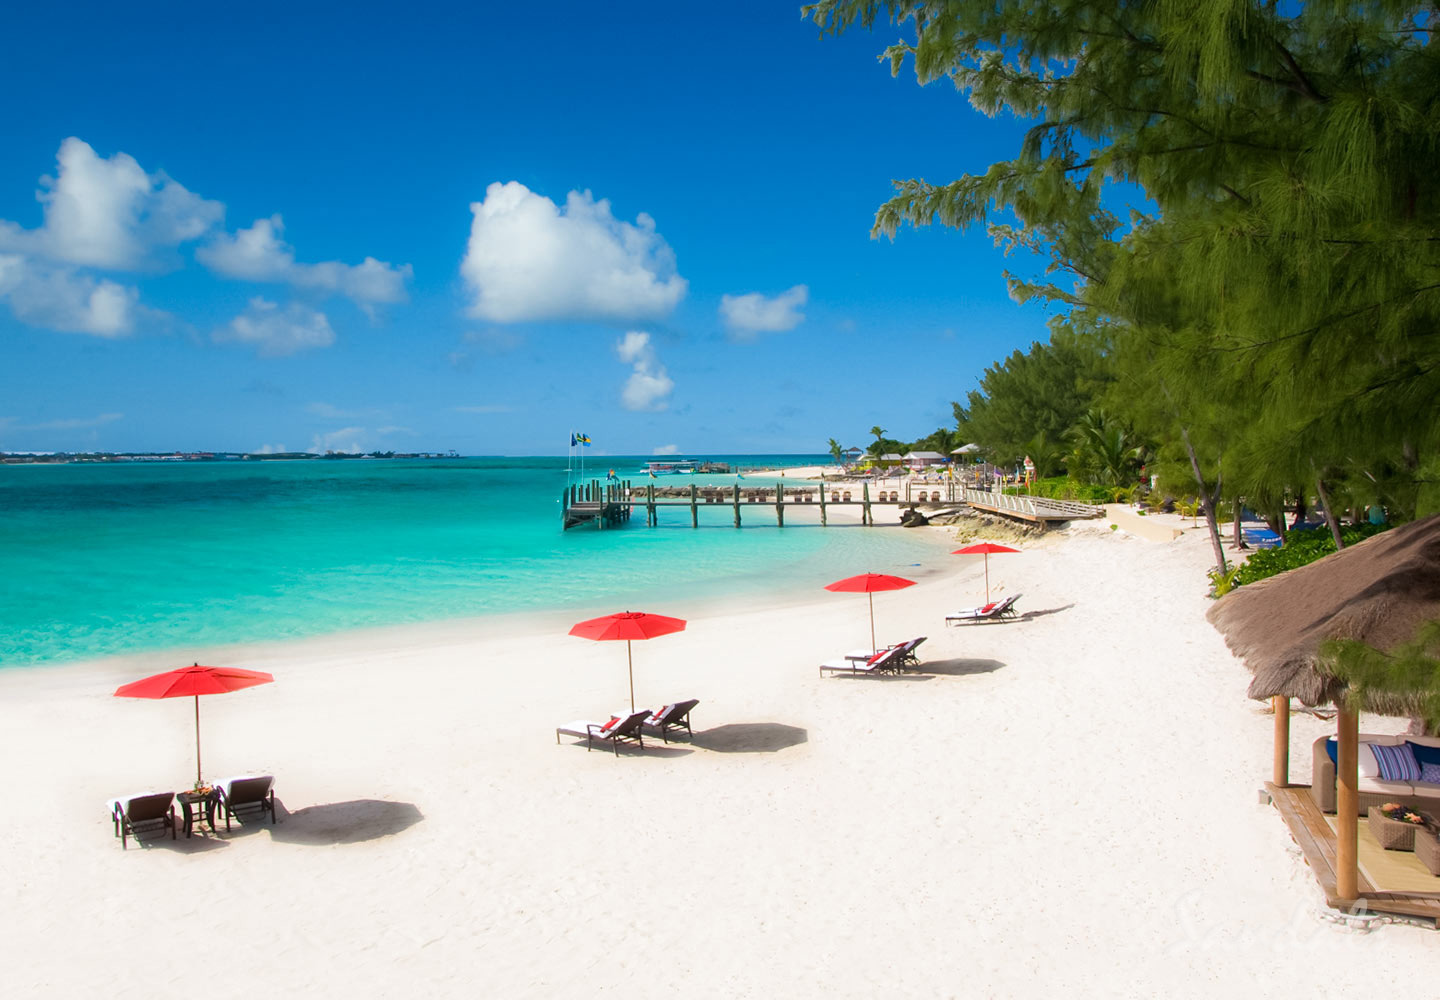 Travel Agency All-Inclusive Resort Sandals Royal Bahamian 024